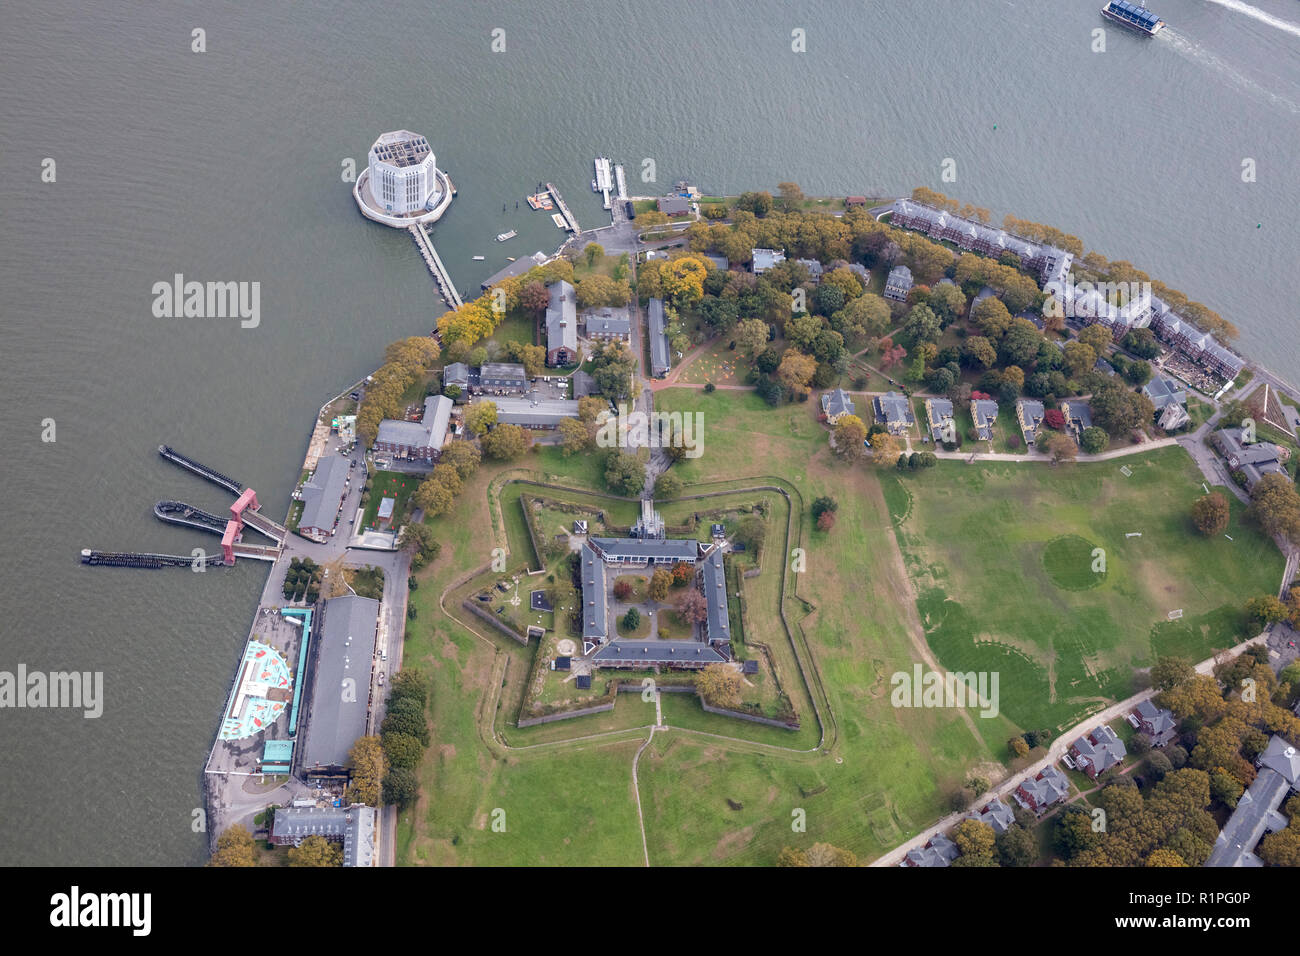 helicopter aerial view of Fort Jay, a coastal star fort and the name of a former US Army post on Governors Island, New York City Harbor, USA - Stock Image